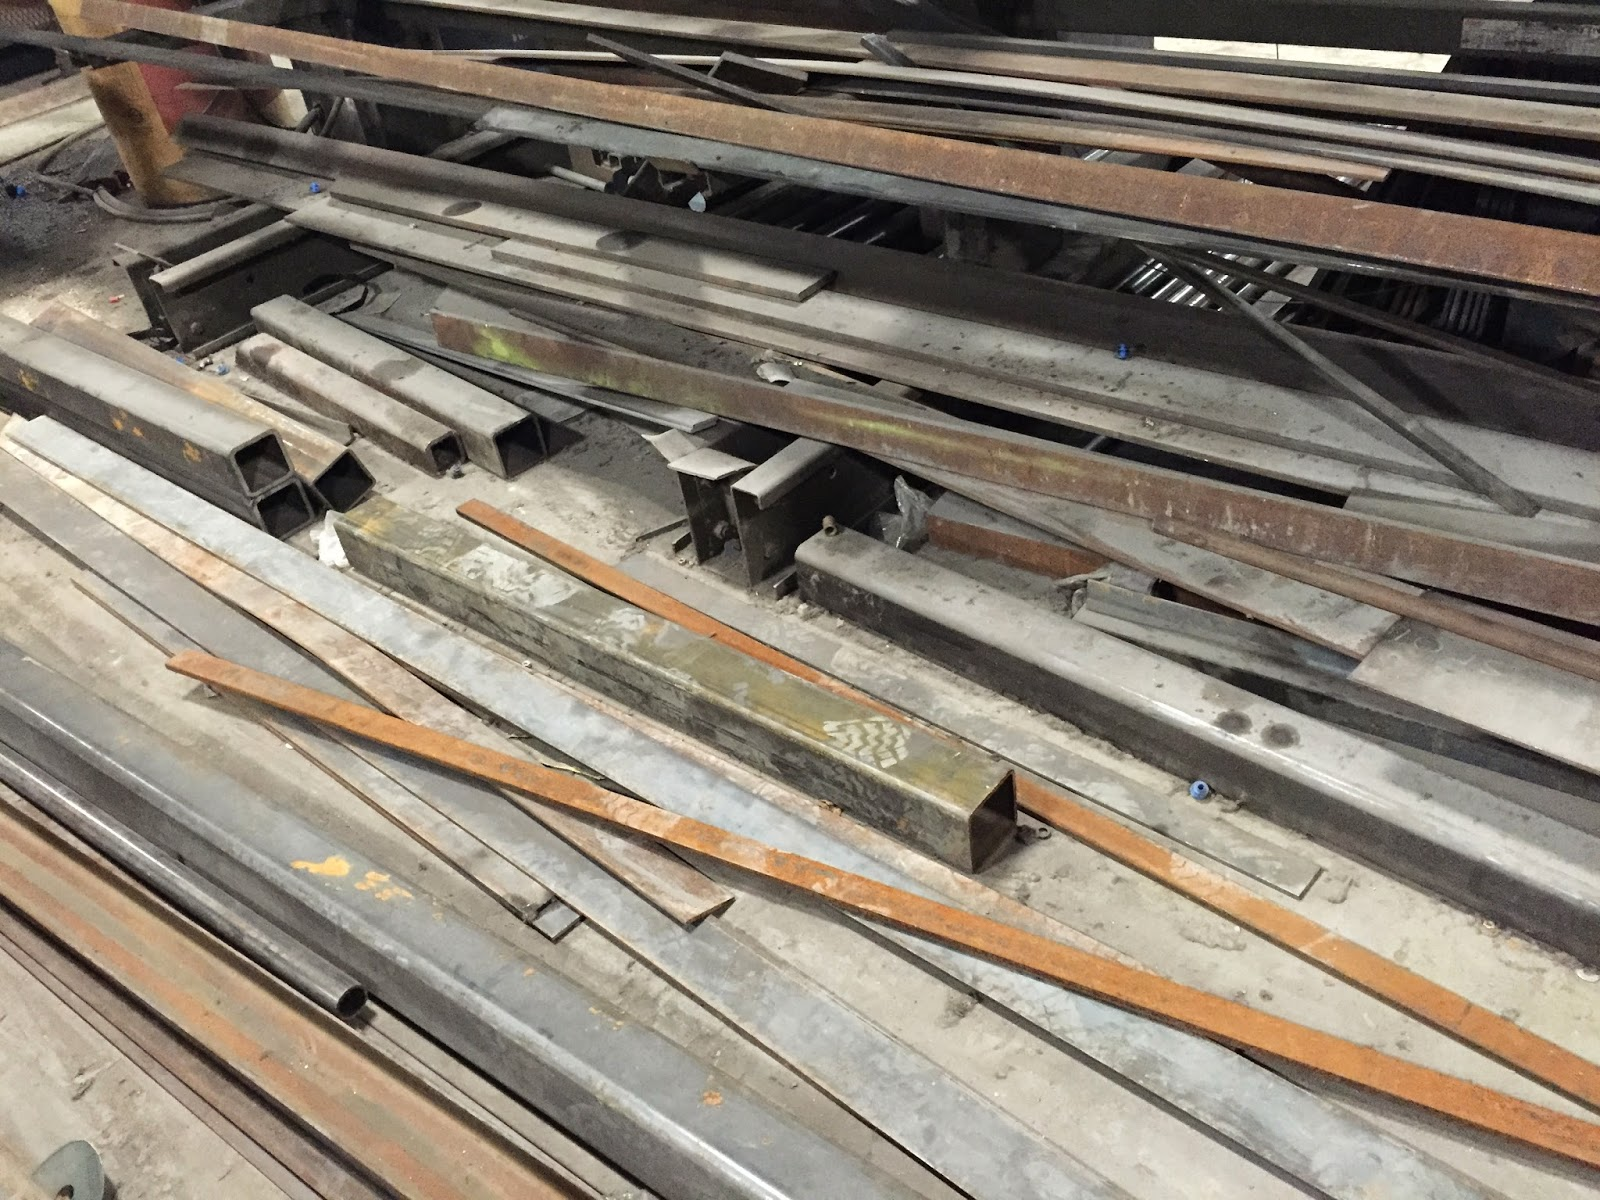 stainless steel, 404 Maury St S, Wilson, NC, 27893, (252) 243-3586